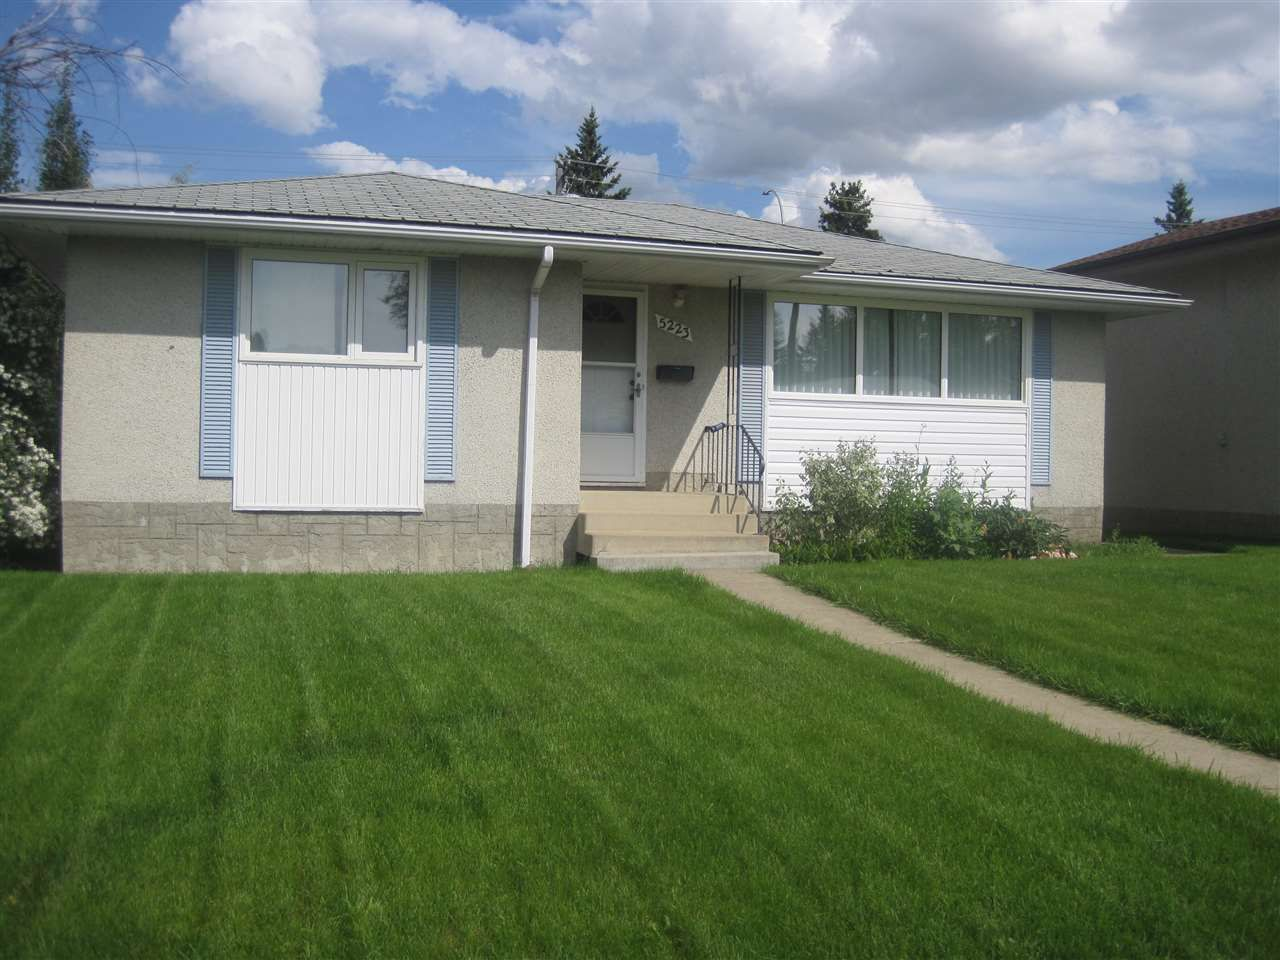 Main Photo: 5223 111A Street in Edmonton: Zone 15 House for sale : MLS®# E4160232